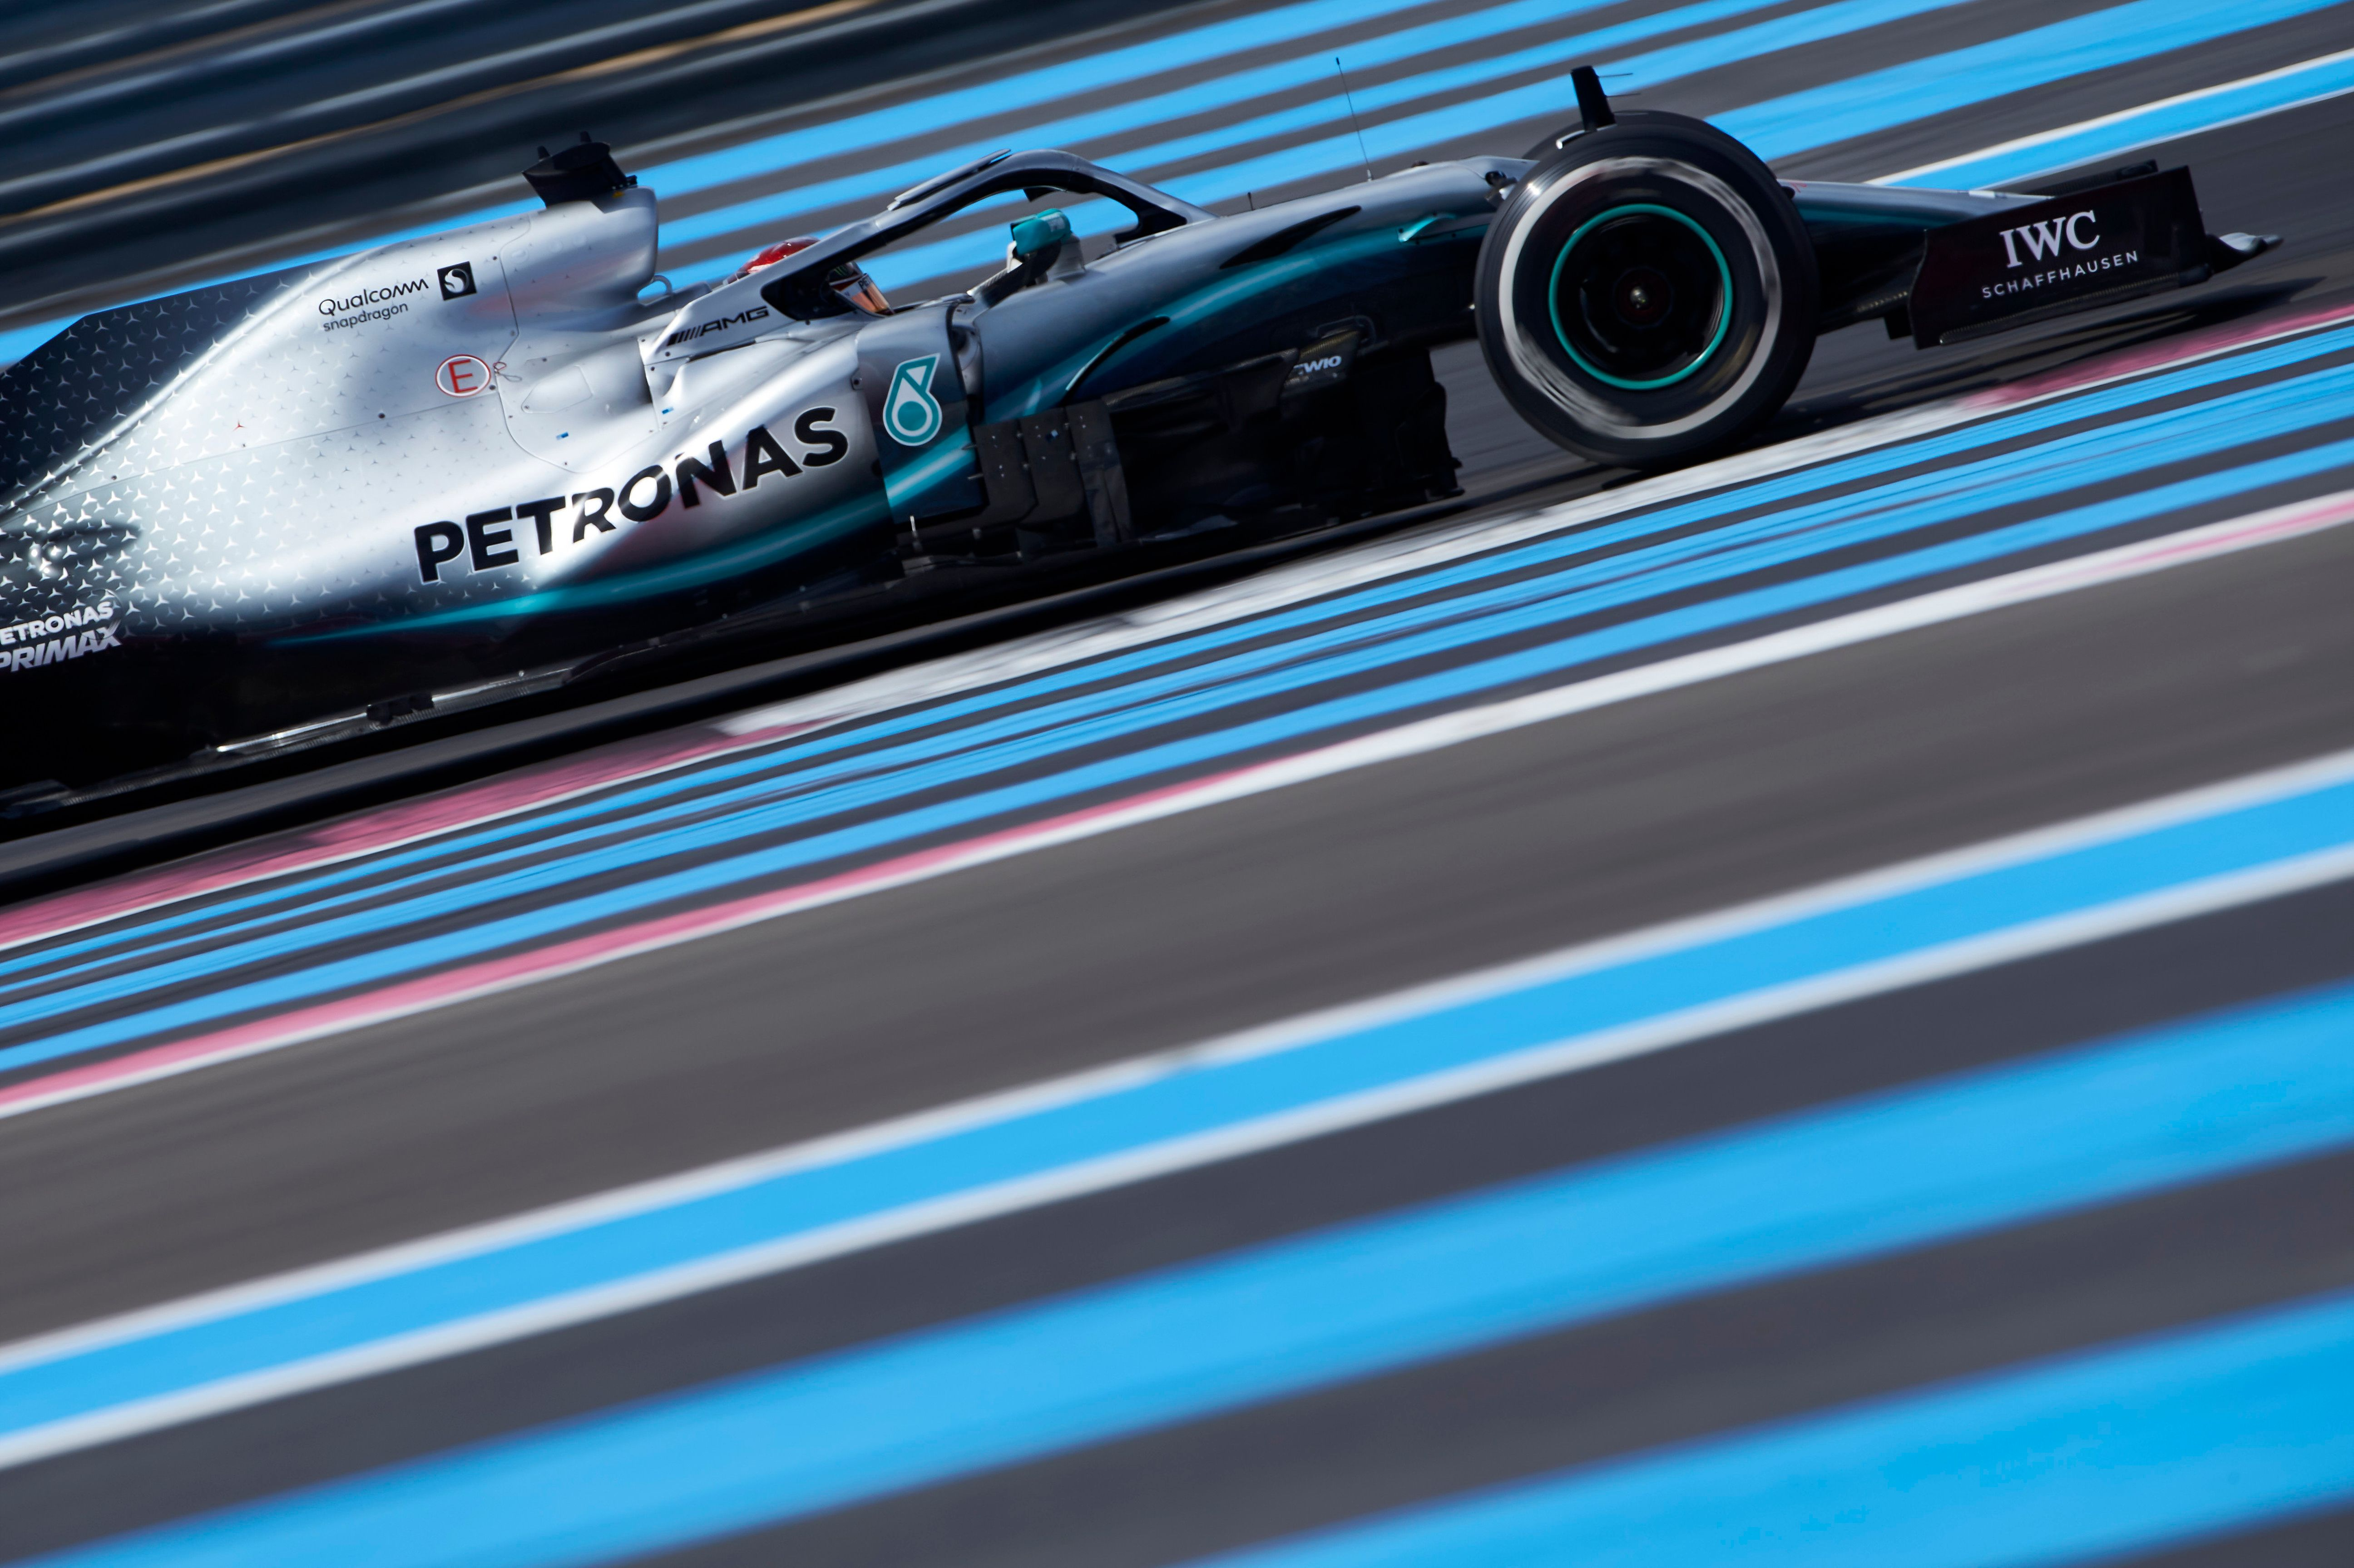 2021 French Grand Prix Stat Preview: